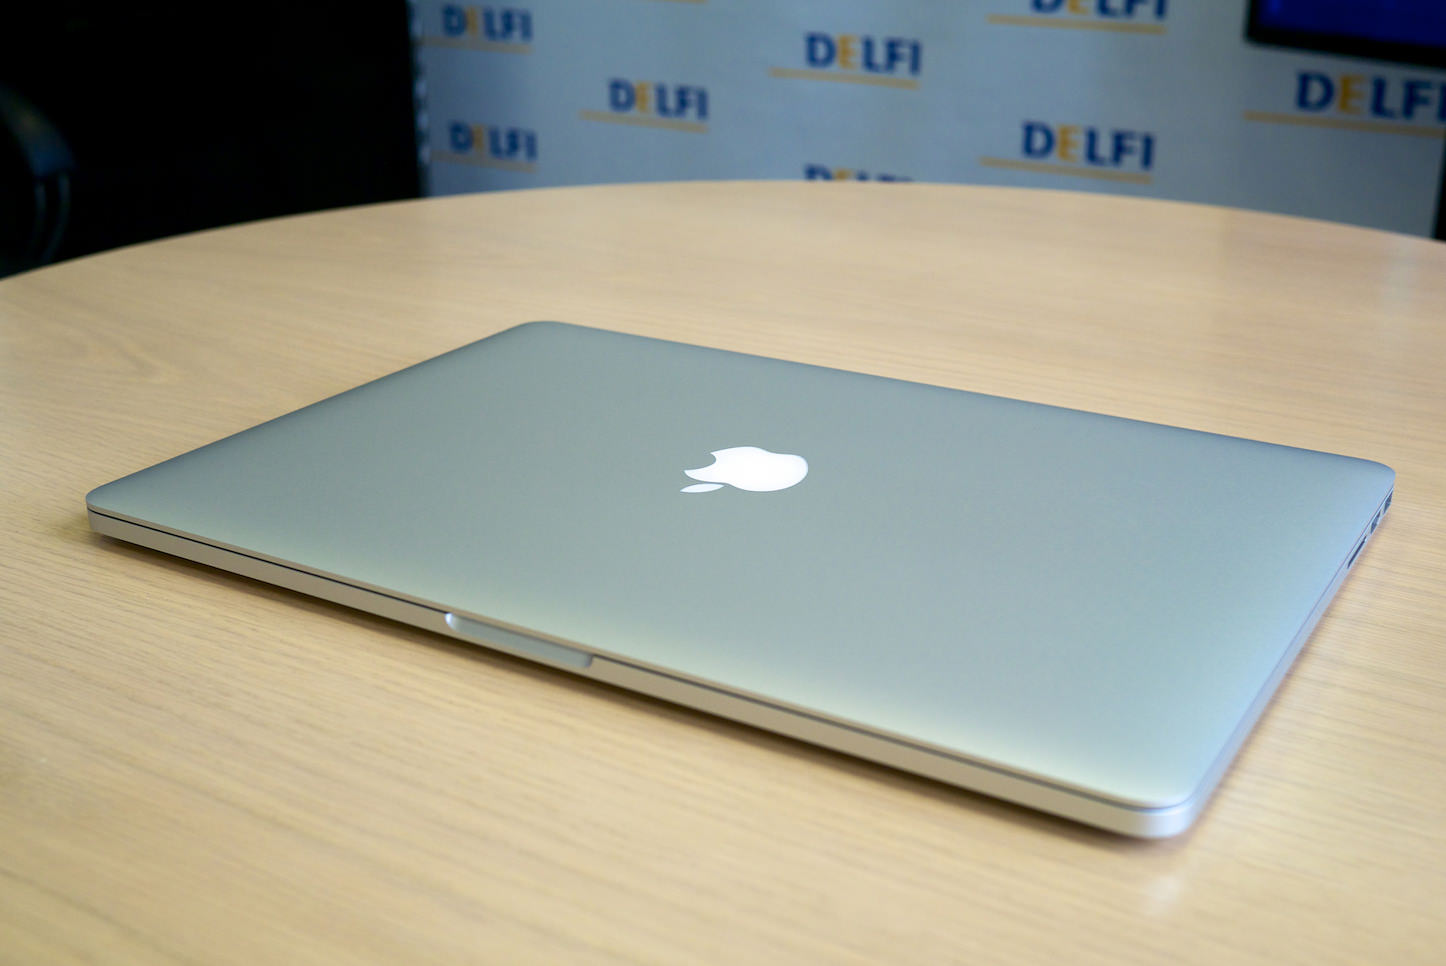 Macbook pro the real apple one